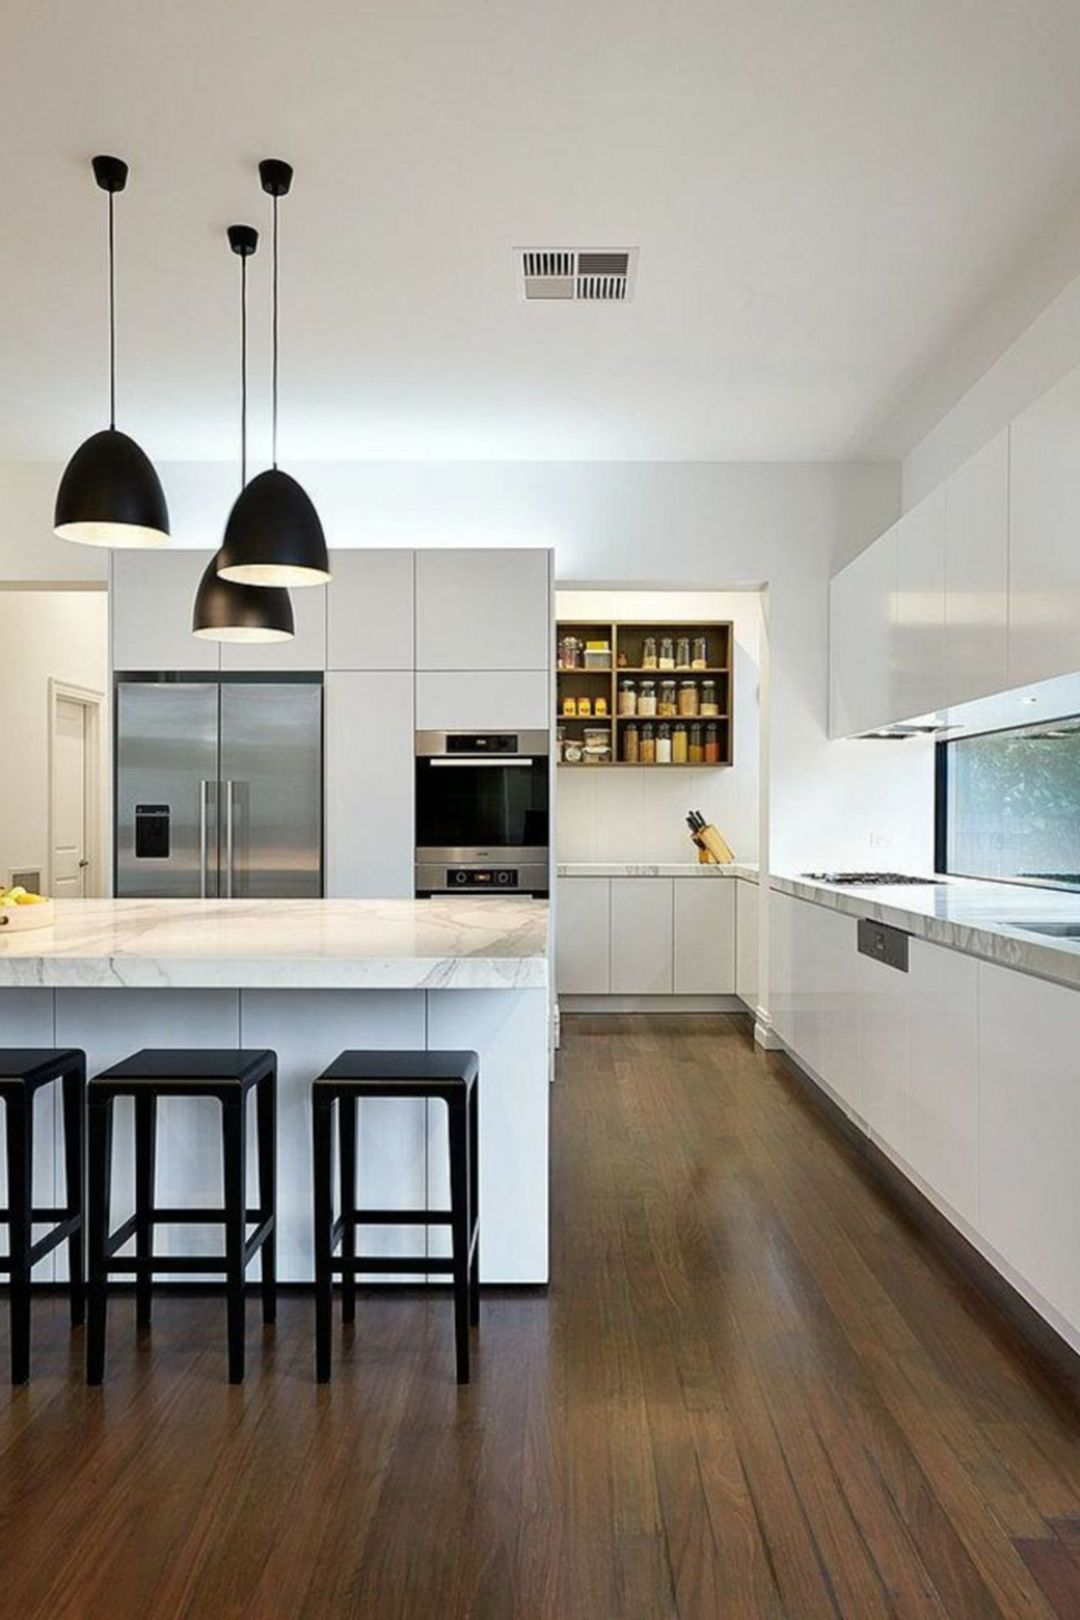 Inspiring 10 Minimalist Kitchen Design Ideas For